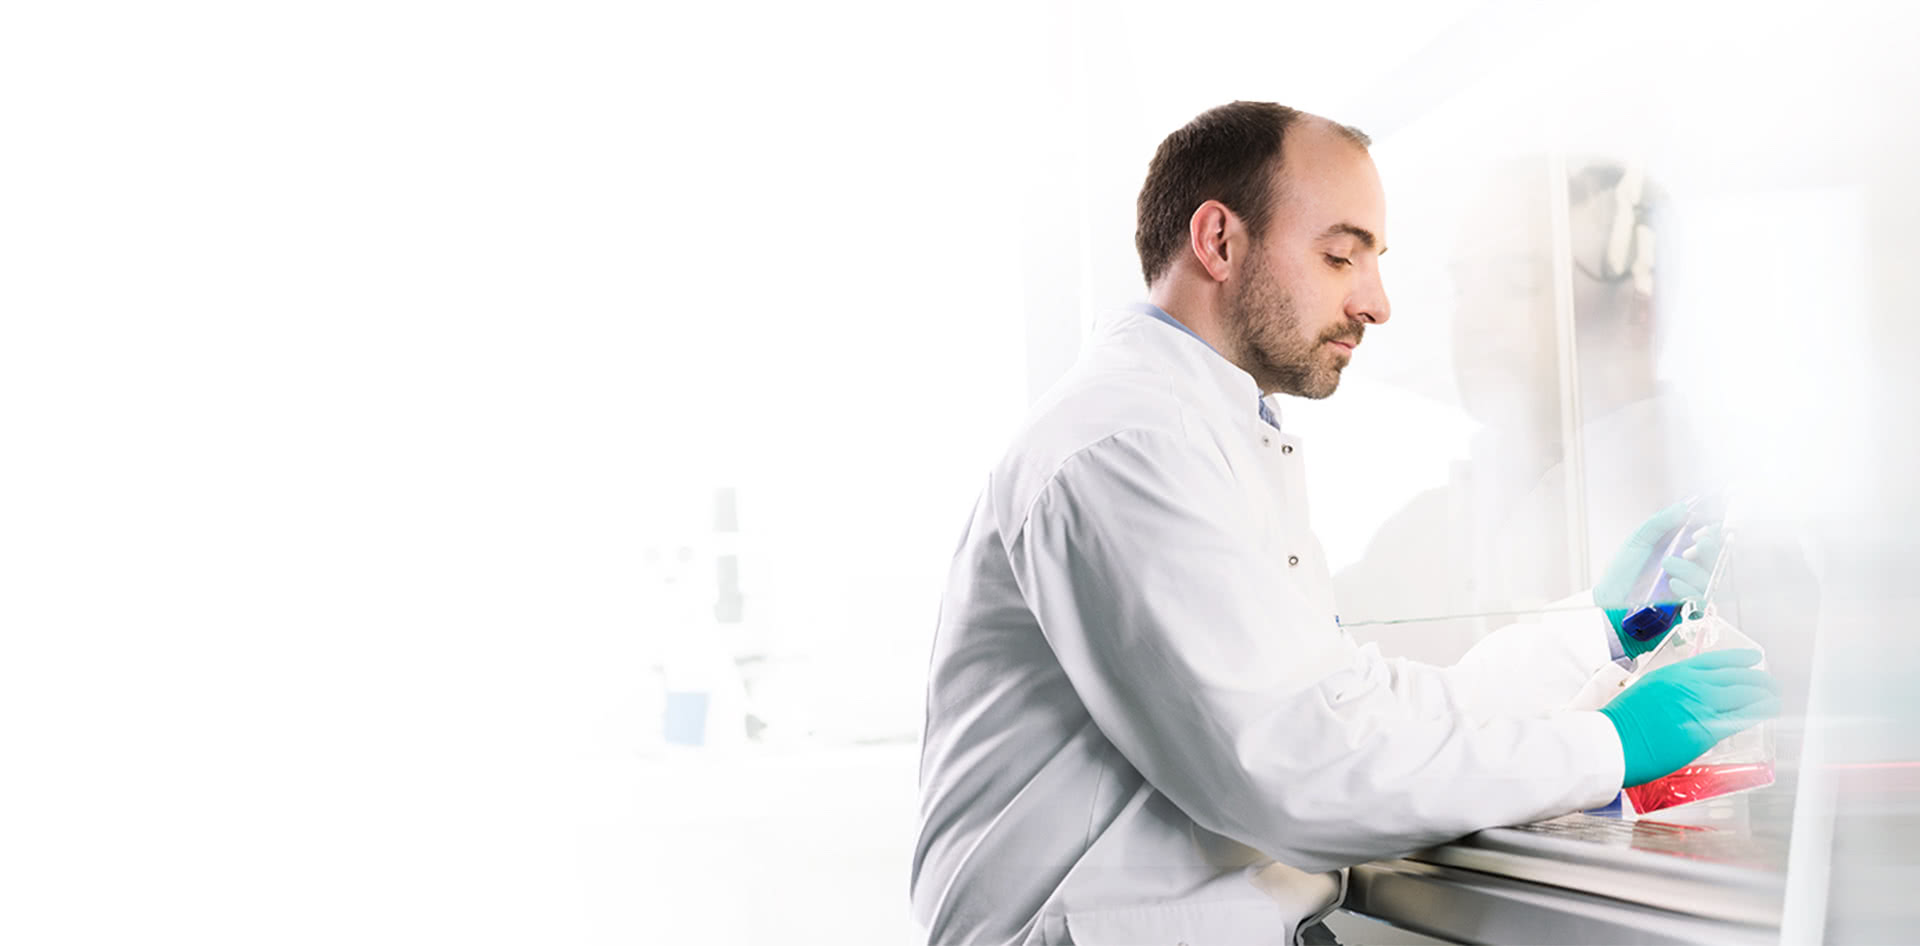 Male HCP in lab environment